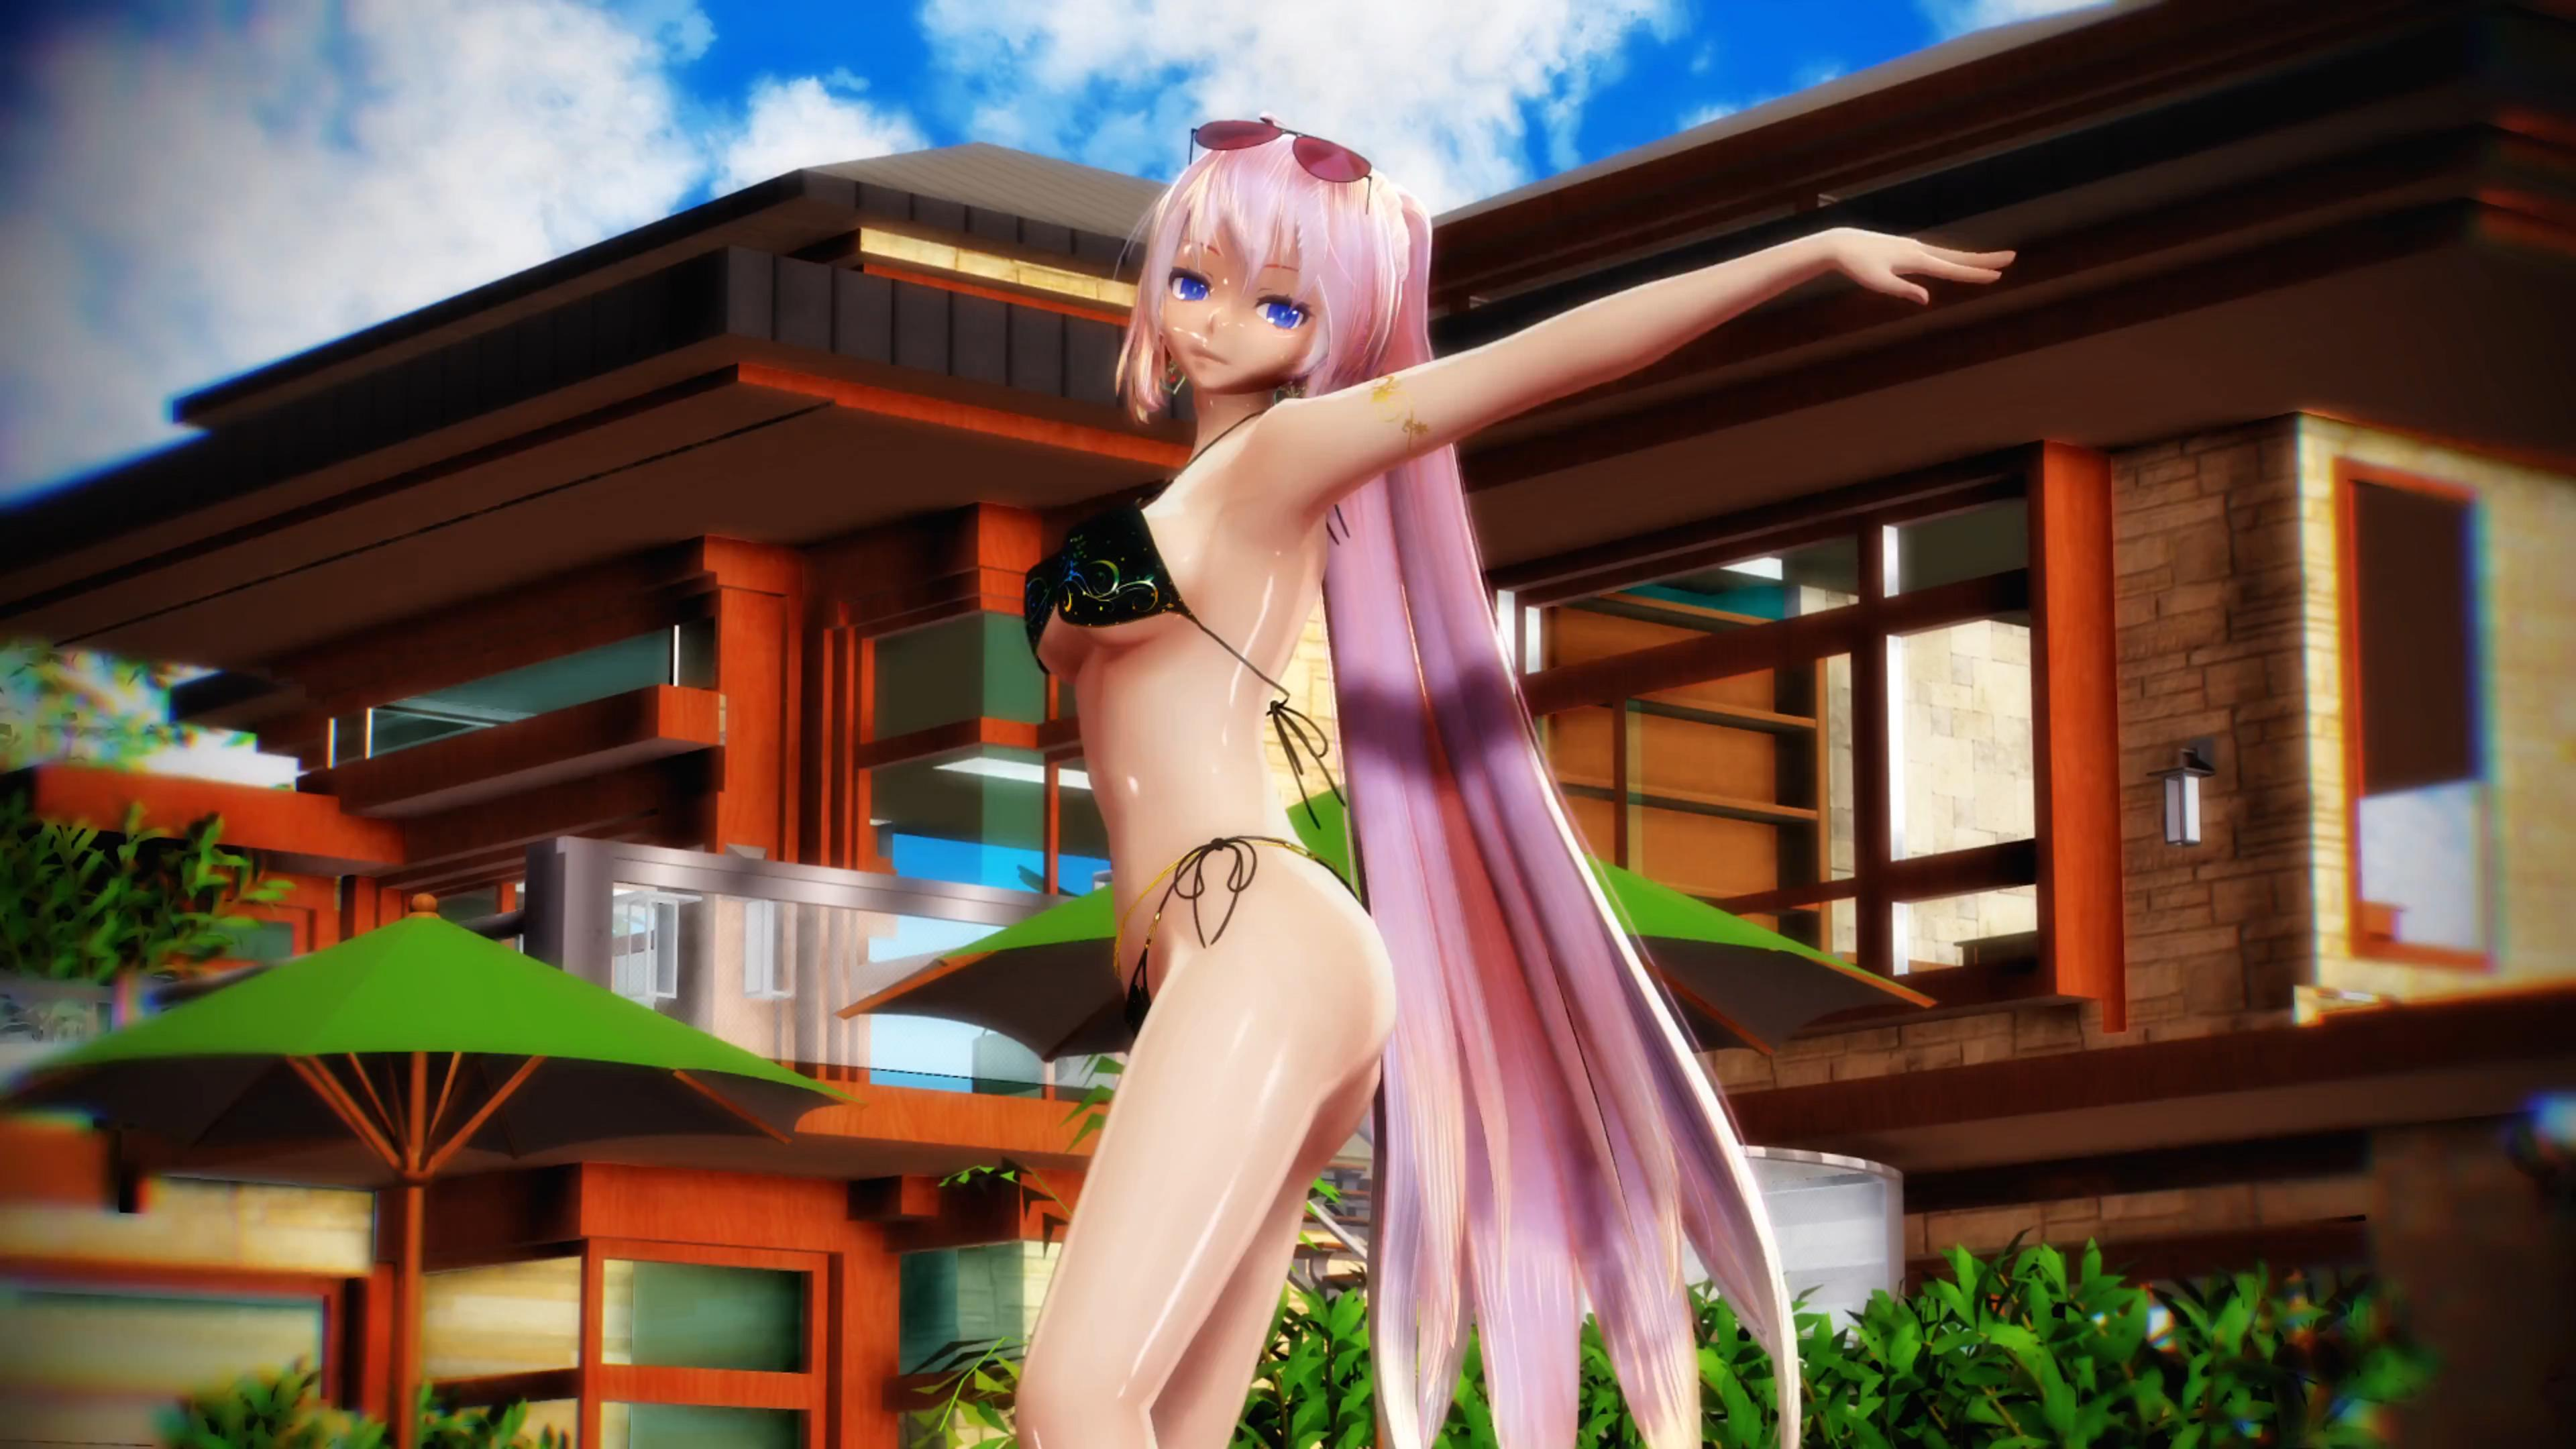 [MMD] Megurine Luka - Good Luck [4KUHD][CAM DL]_20170119160306.JPG